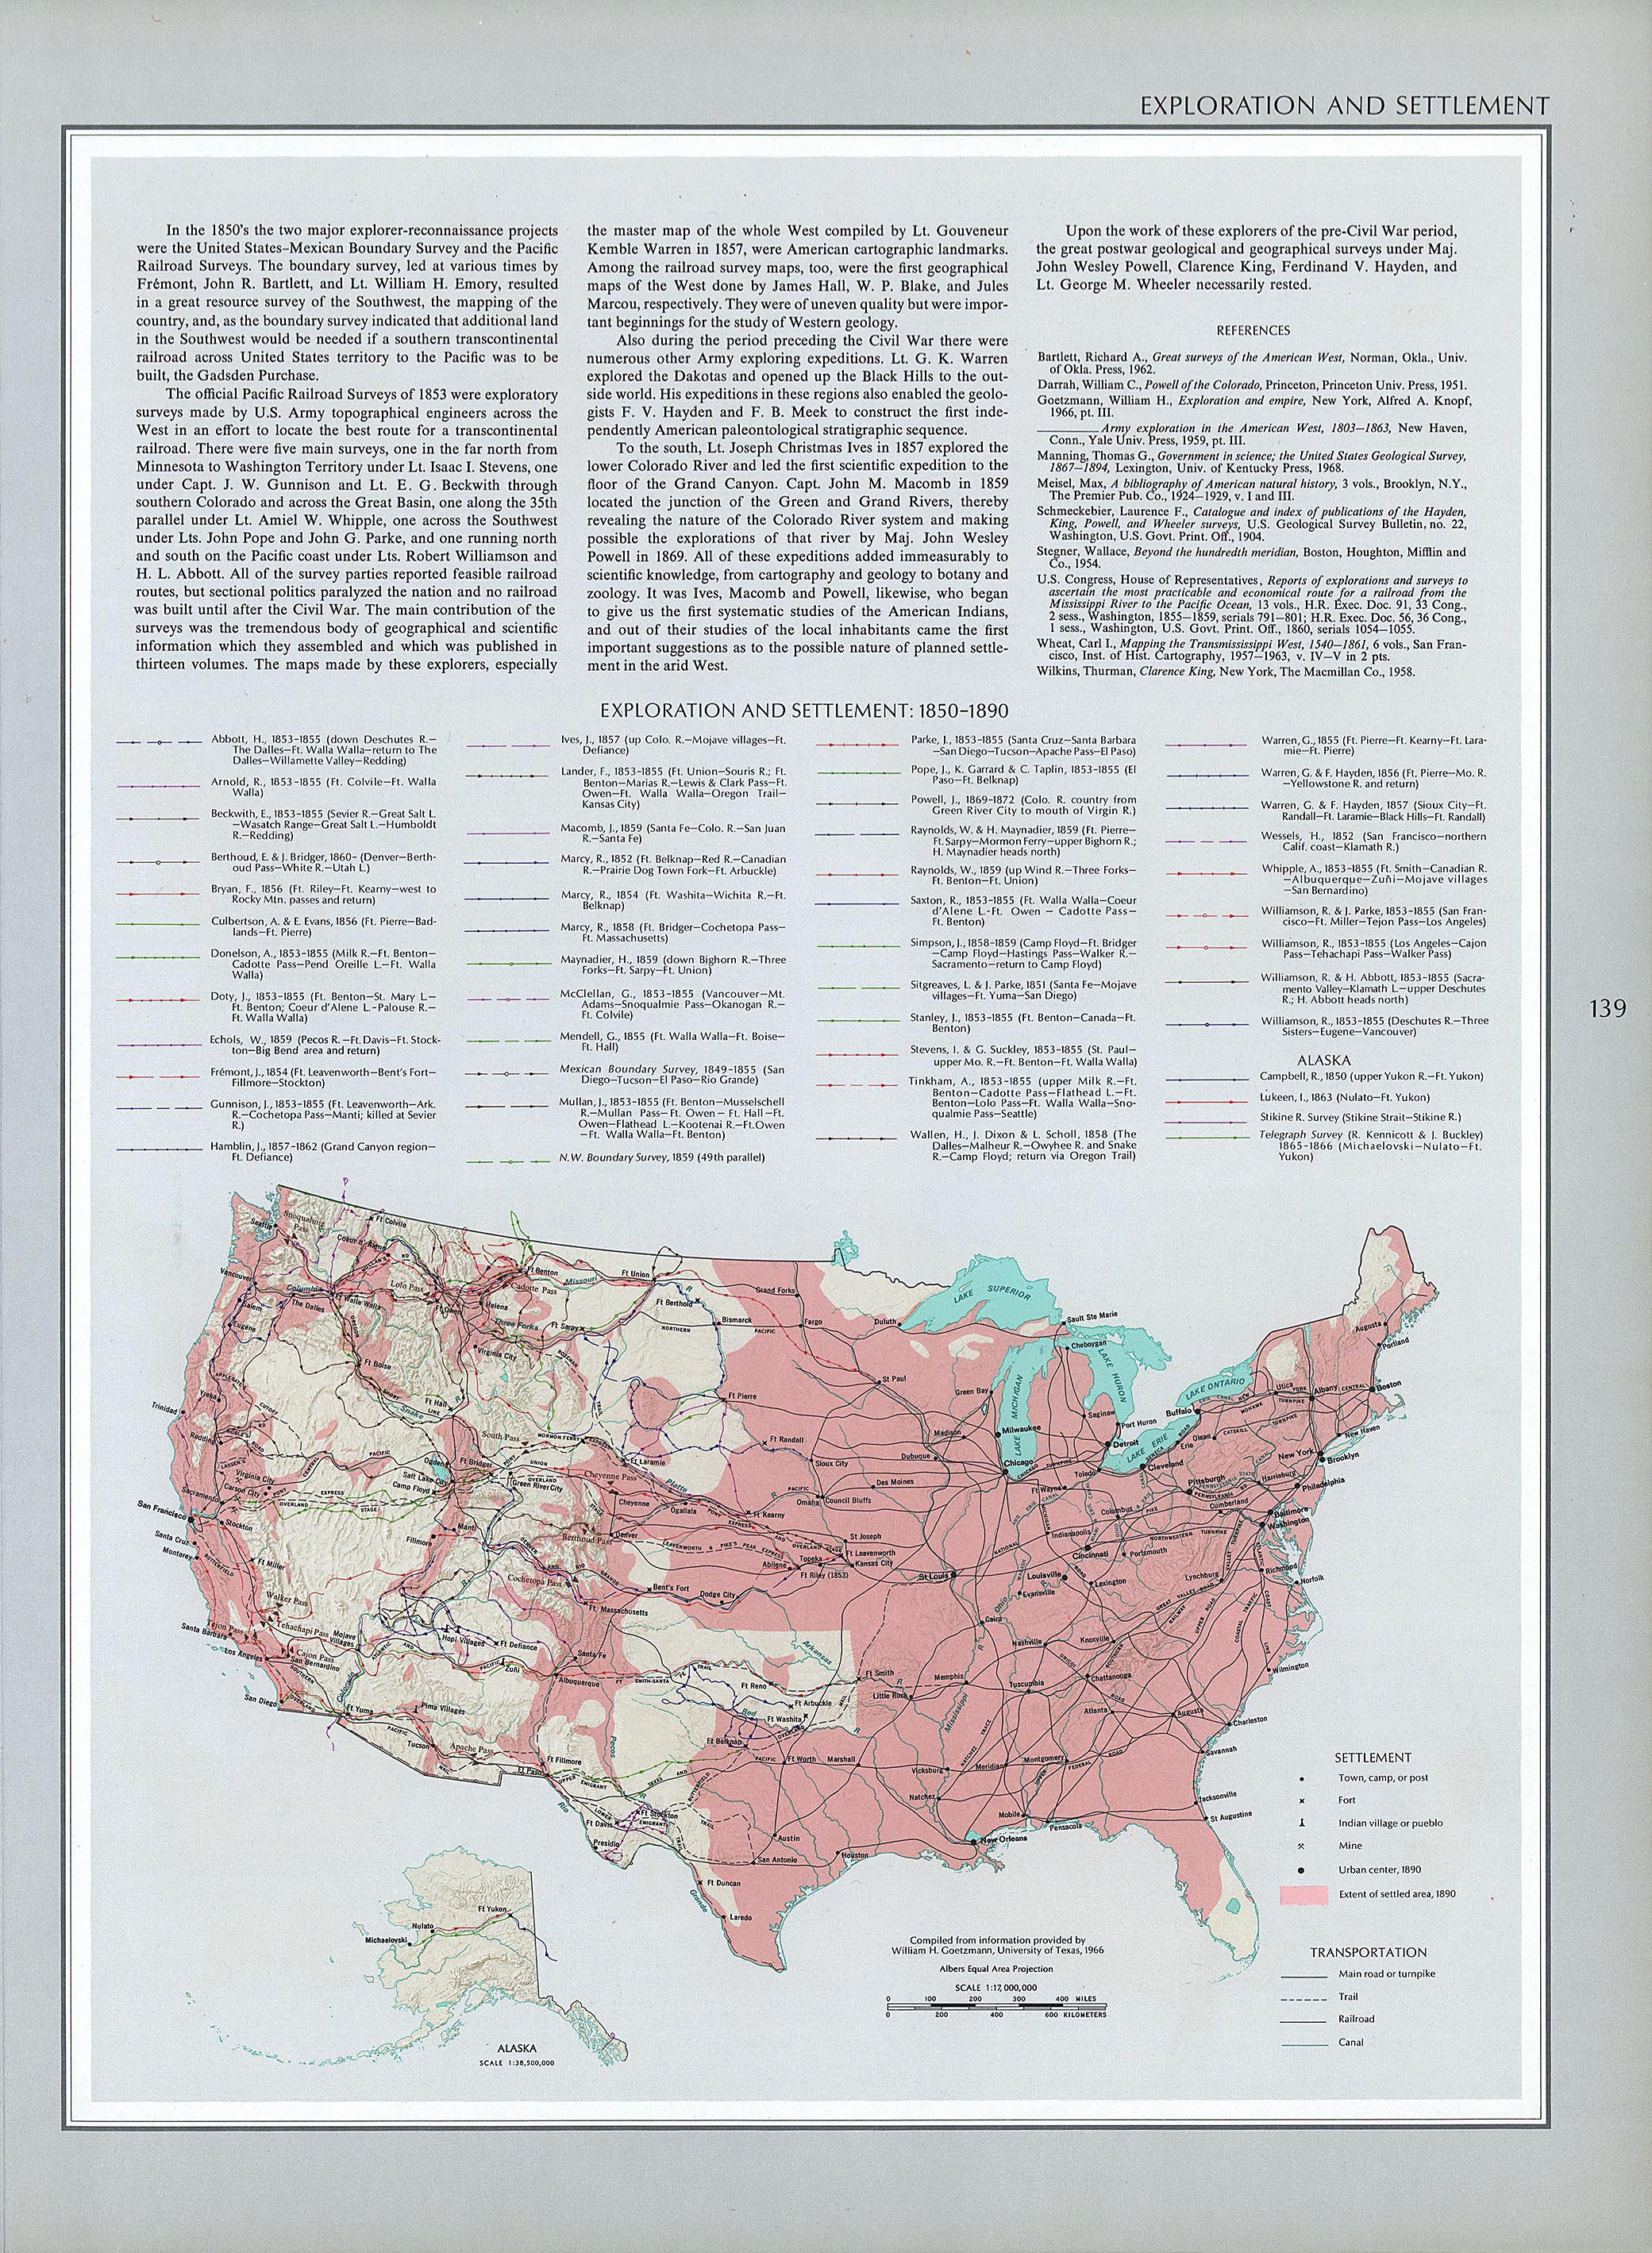 1850s America Map.United States Historical Maps Perry Castaneda Map Collection Ut